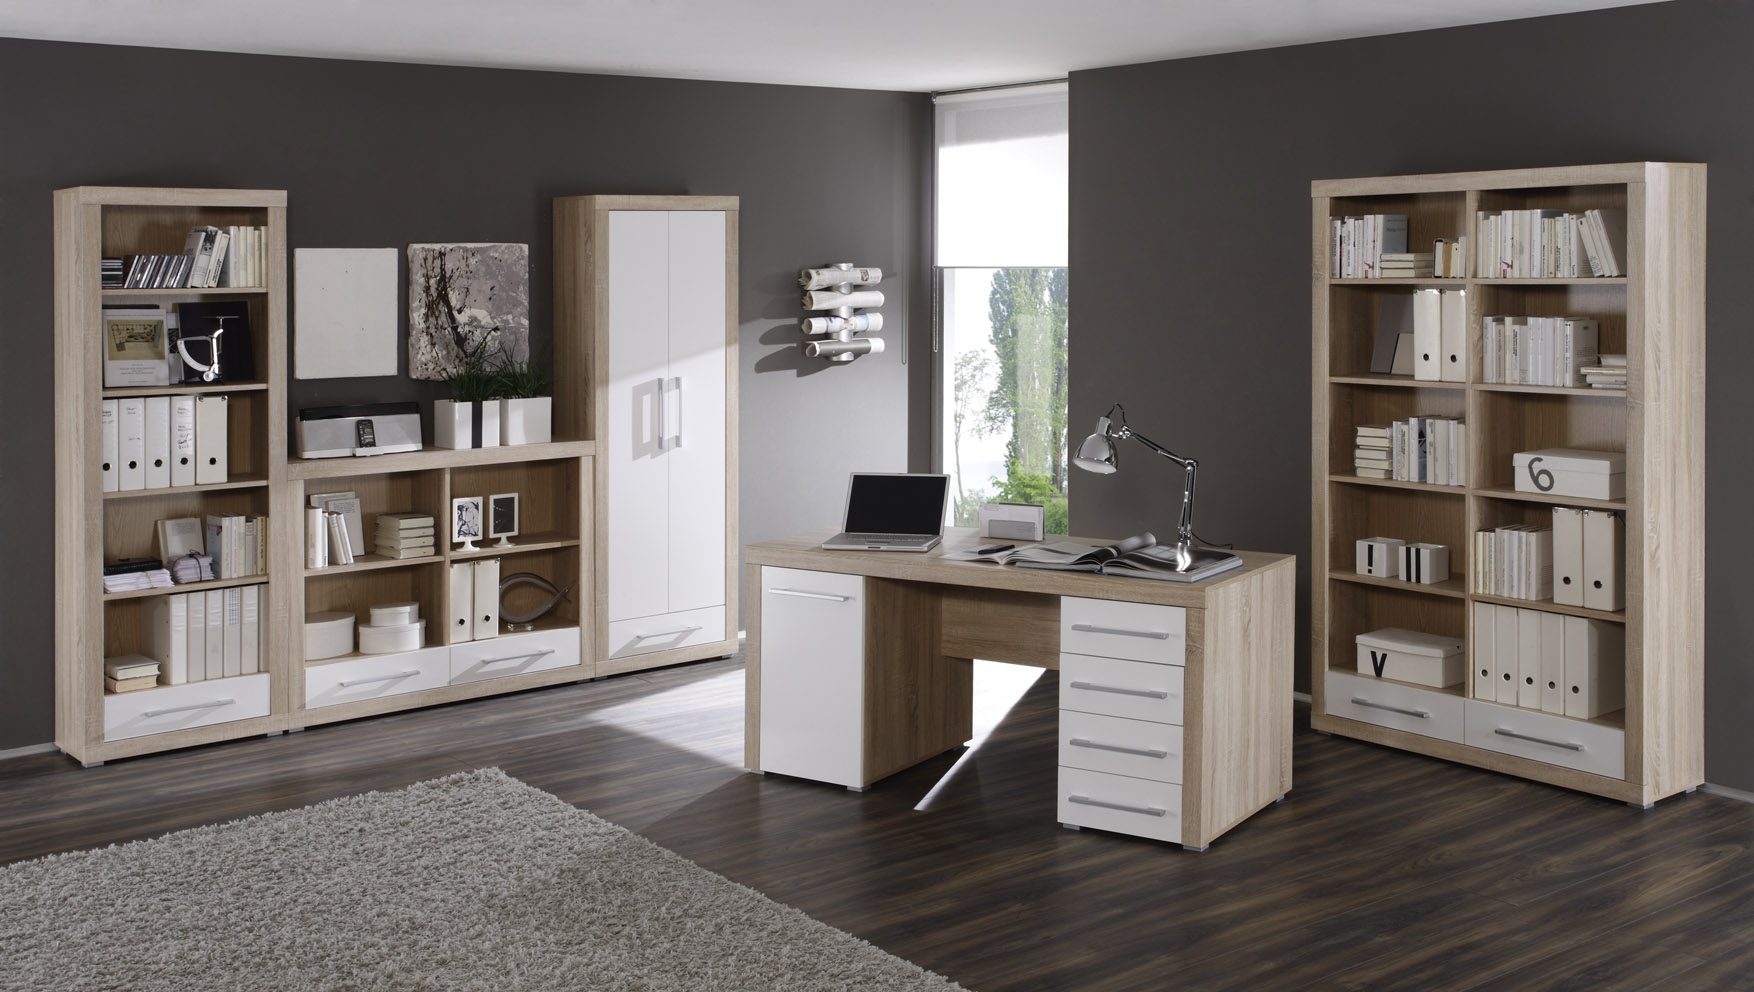 charon aktenschrank 2 t rig sonoma eiche weiss. Black Bedroom Furniture Sets. Home Design Ideas